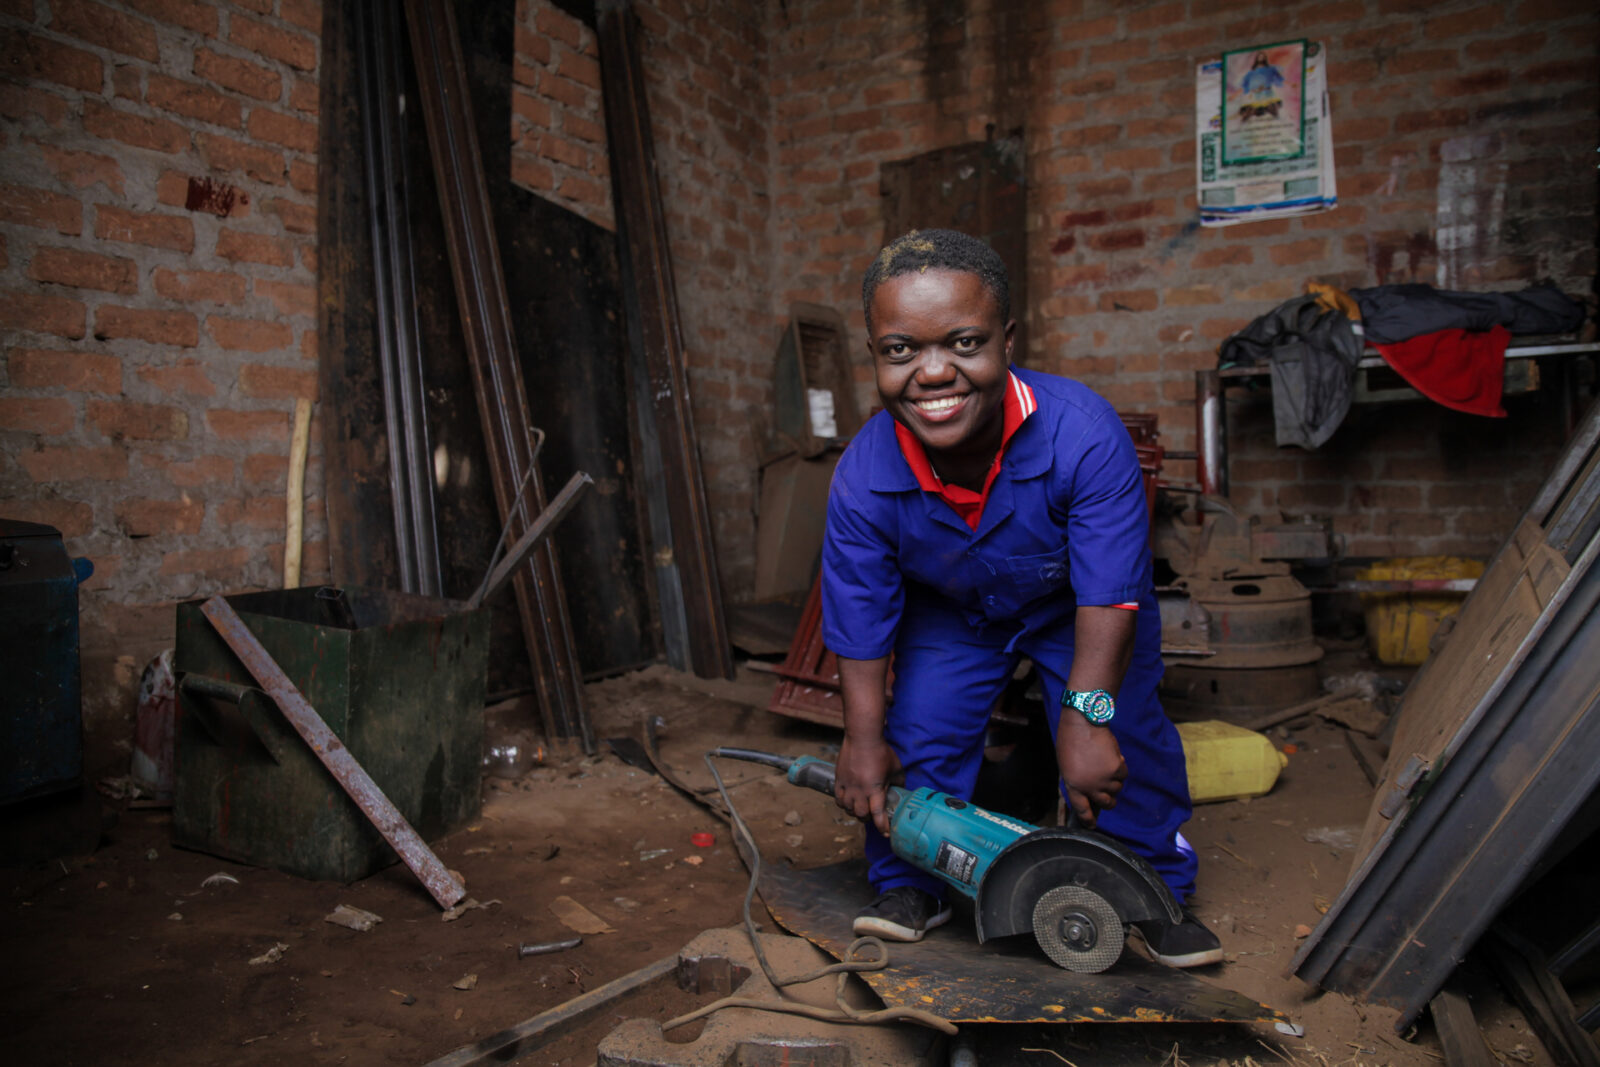 A man with dwarfism is pictured in a workshop, smiling as he uses a saw to cut a piece of metal.